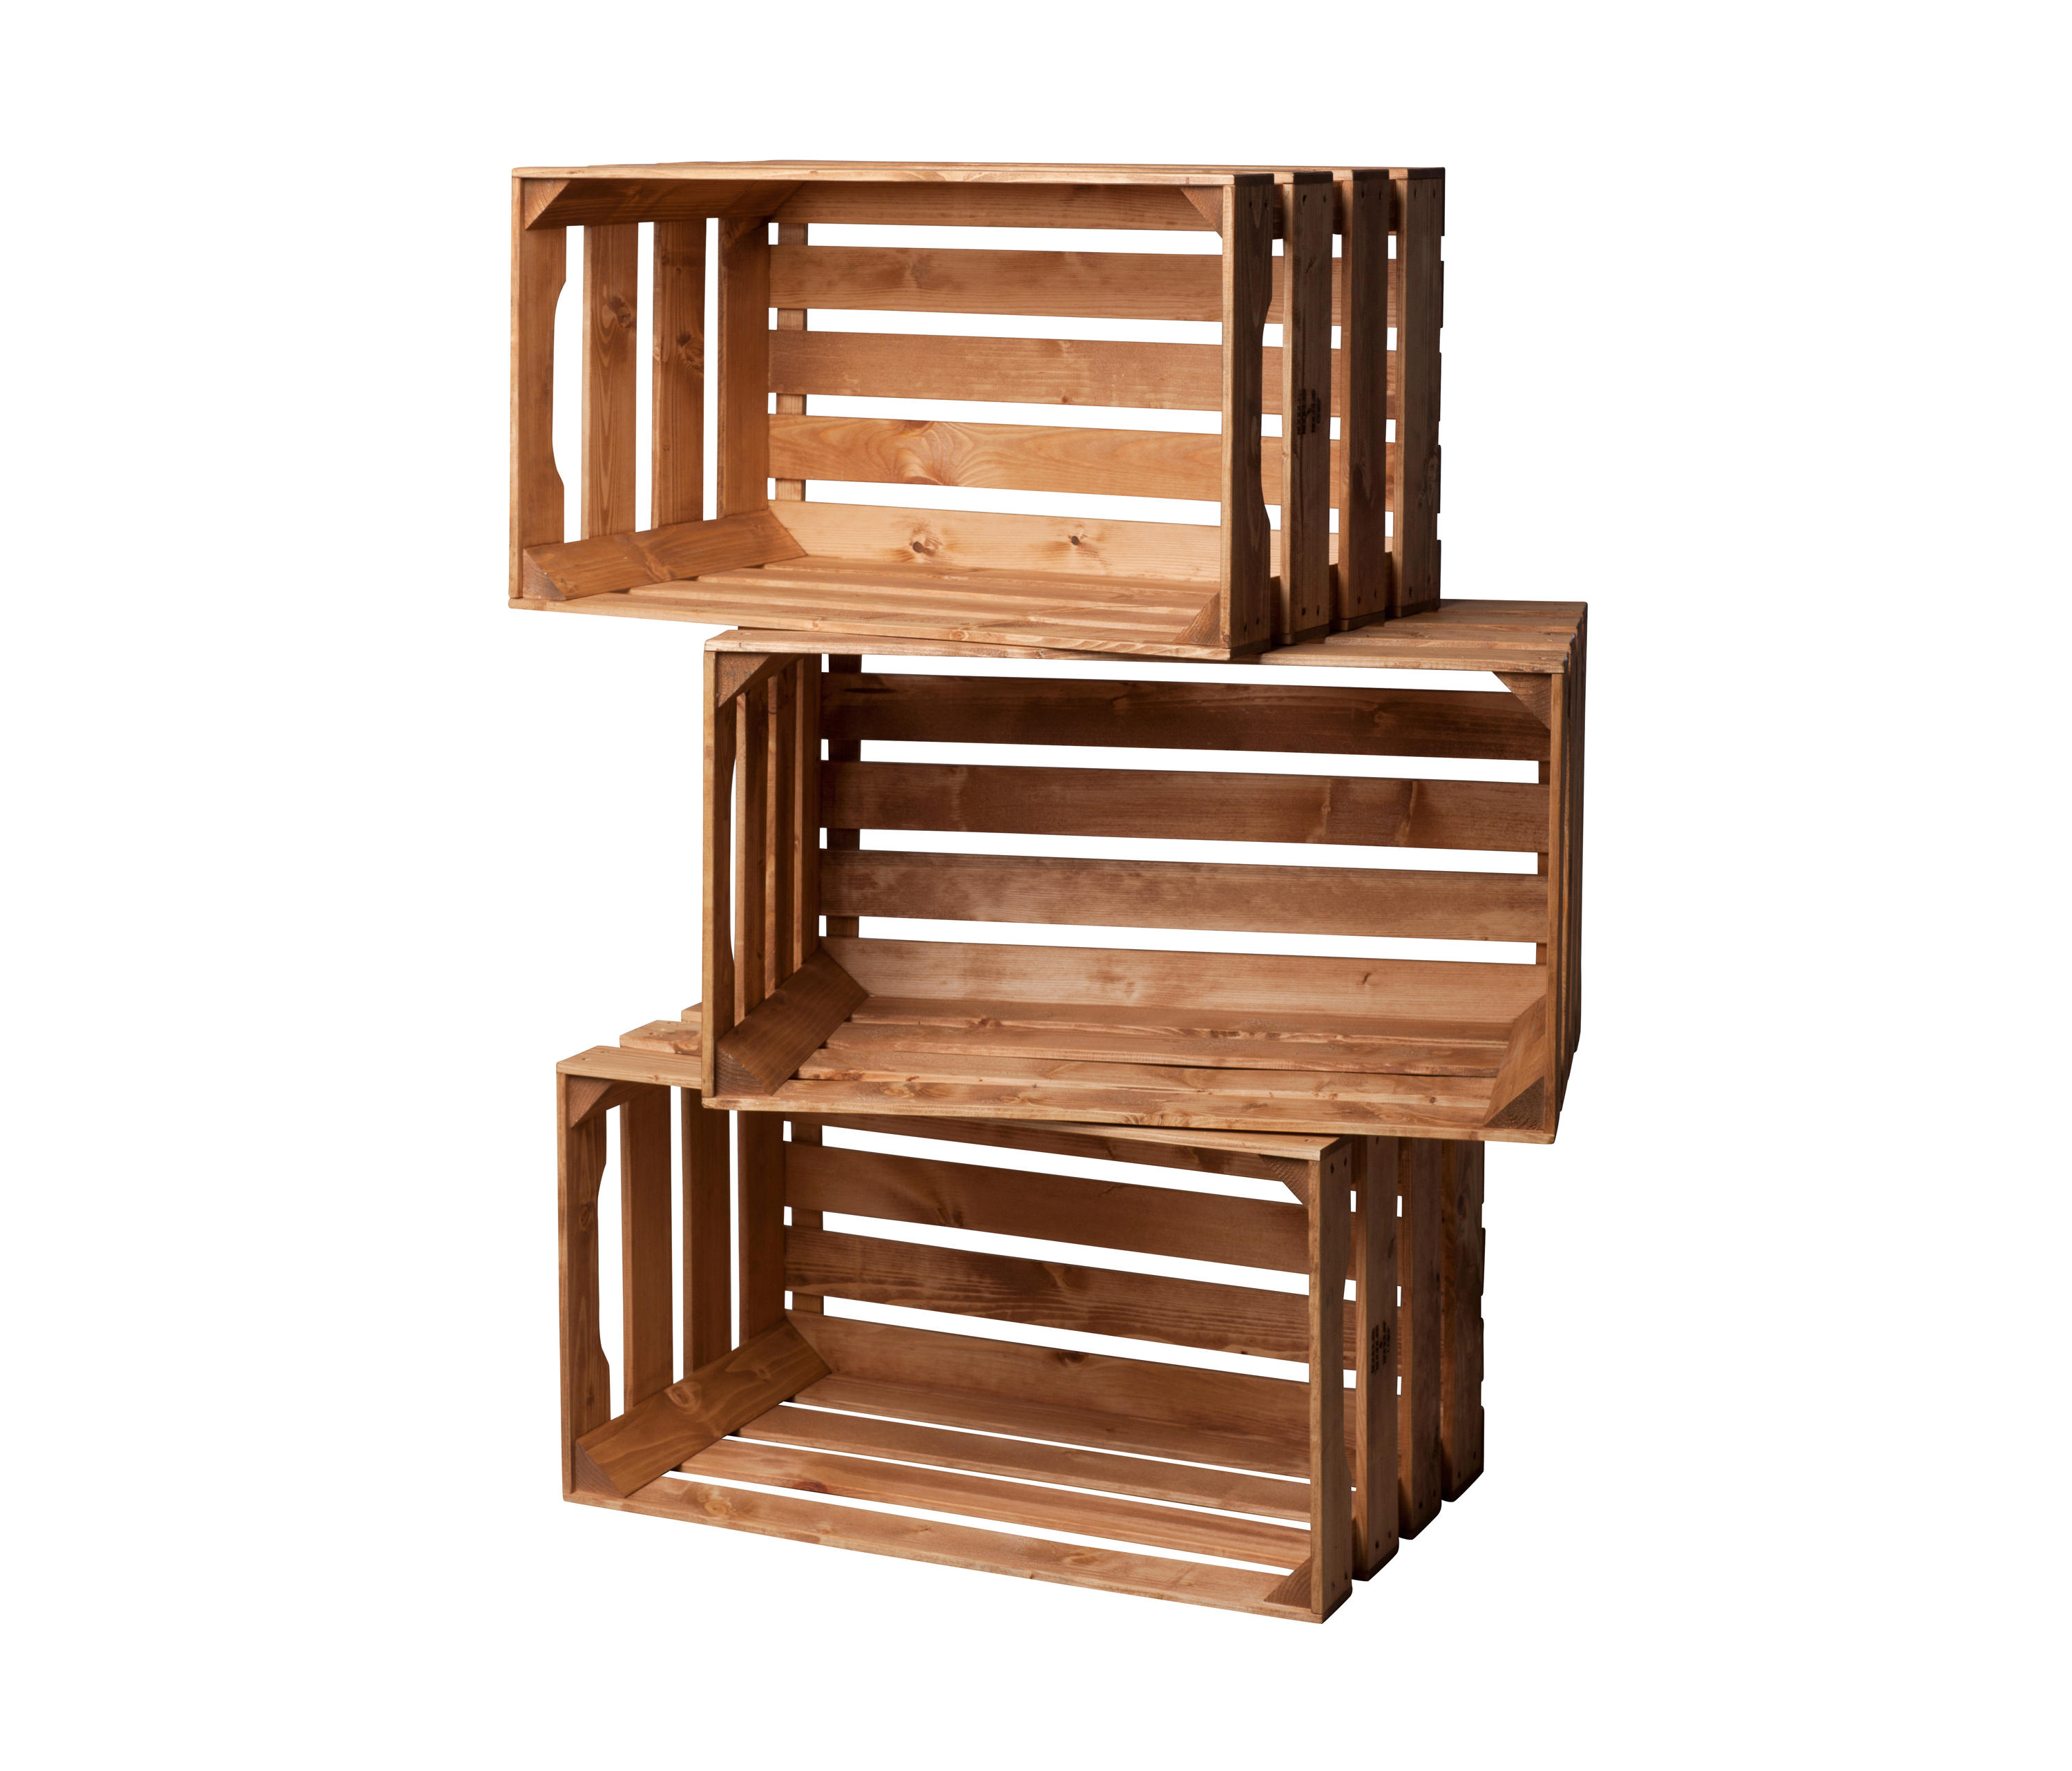 wood crate extra large office shelving systems from noodles noodles noodles architonic. Black Bedroom Furniture Sets. Home Design Ideas